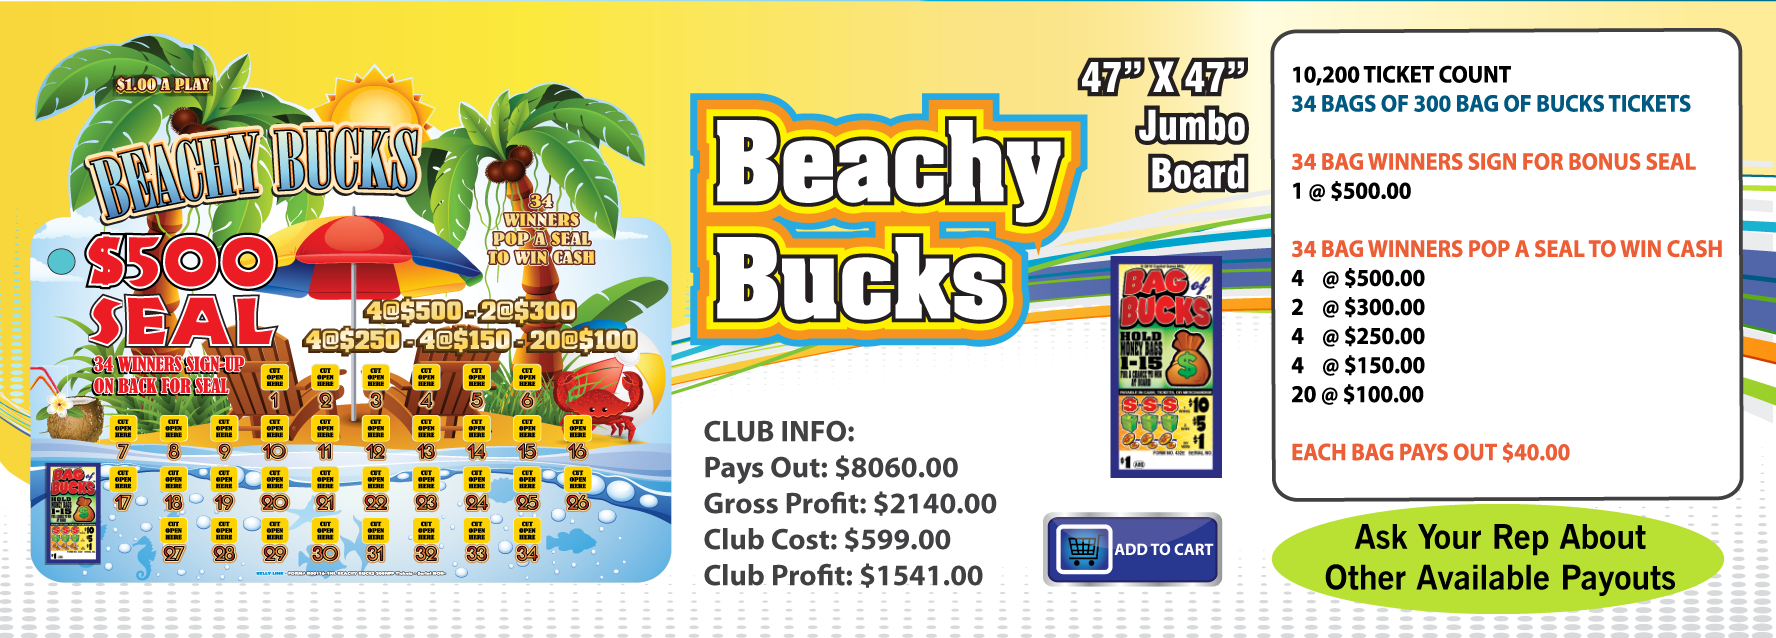 Beachy Bucks